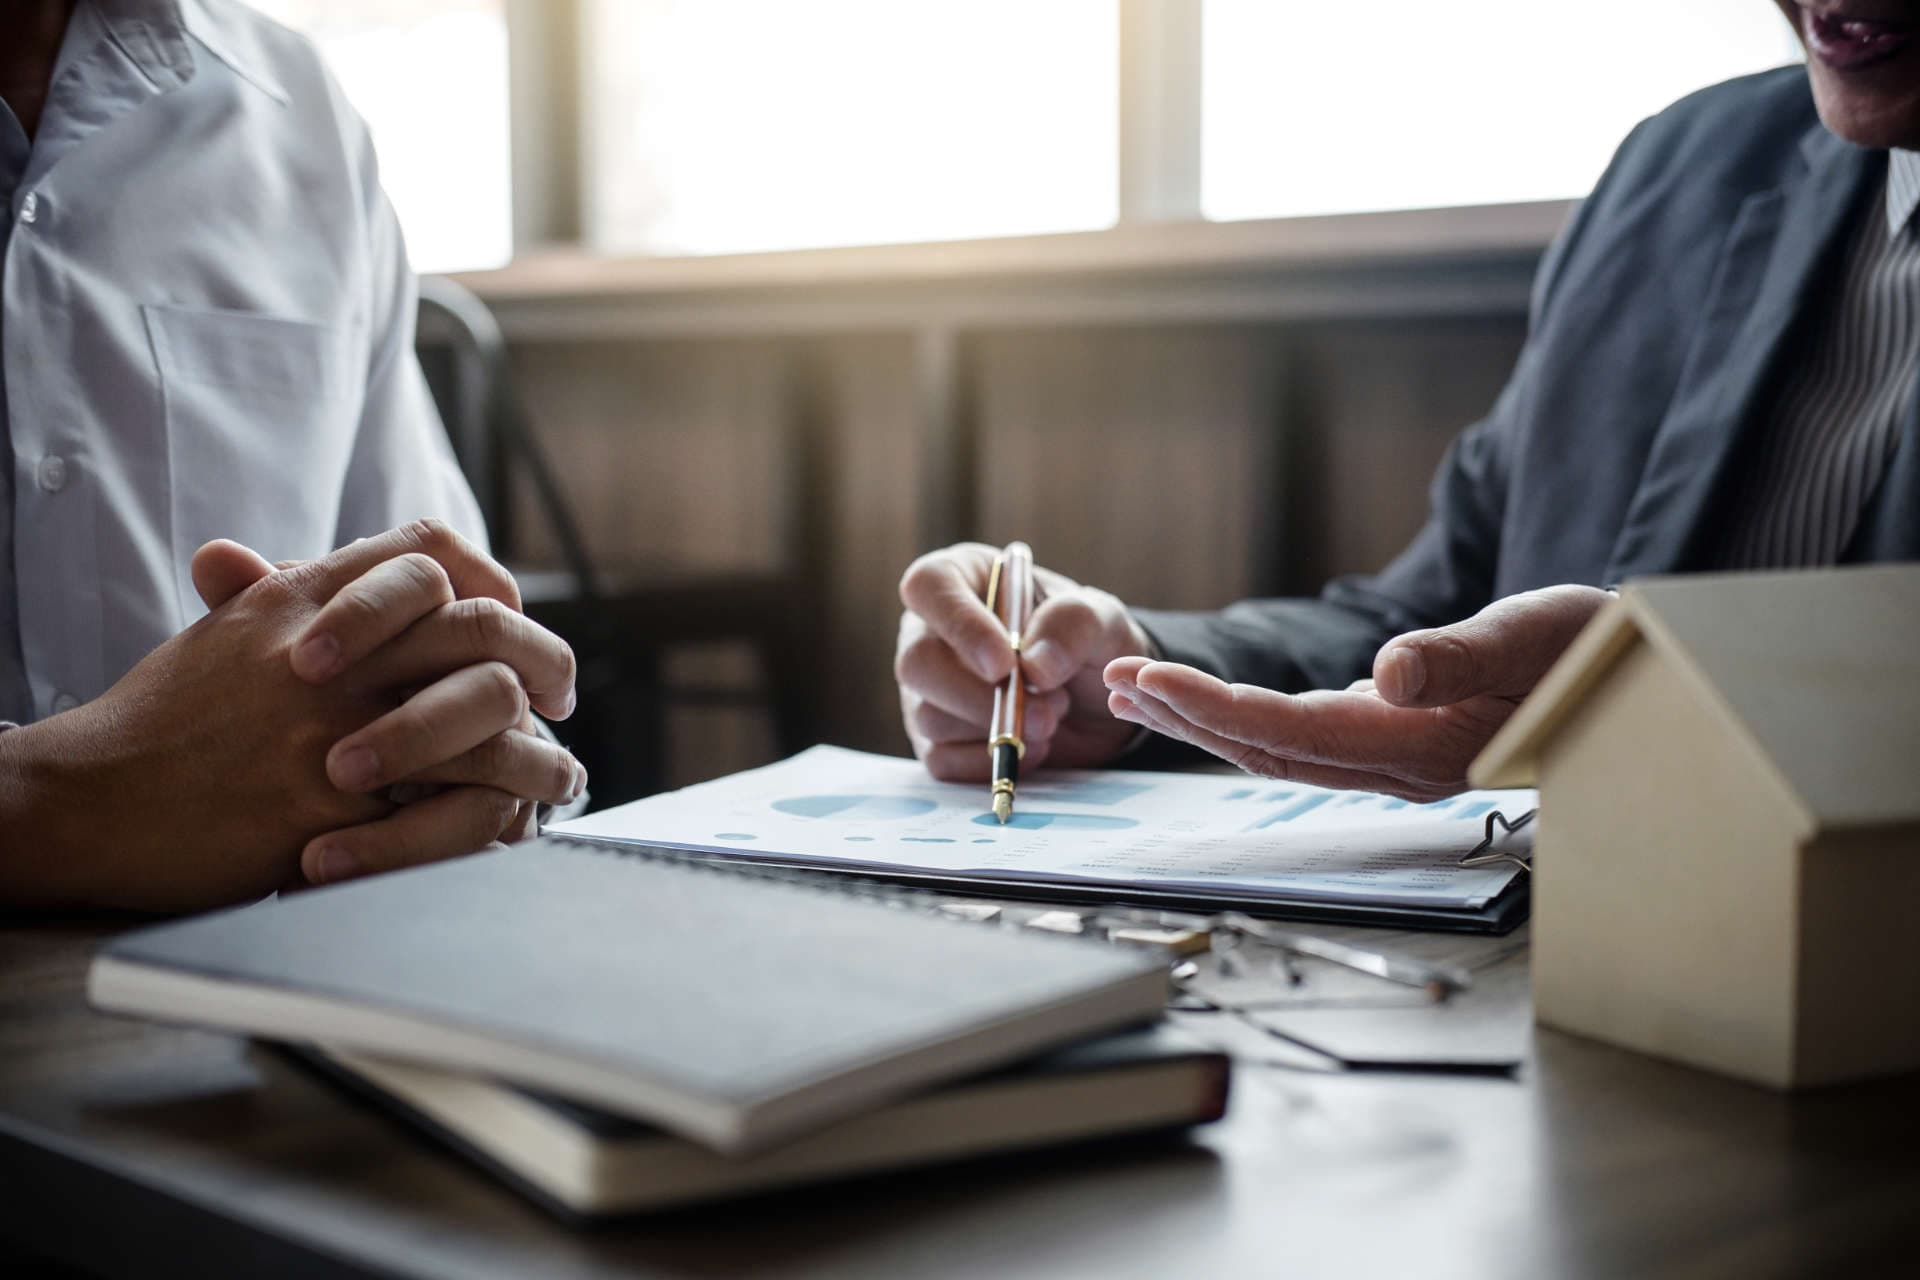 Businessman reviewing documents with another man